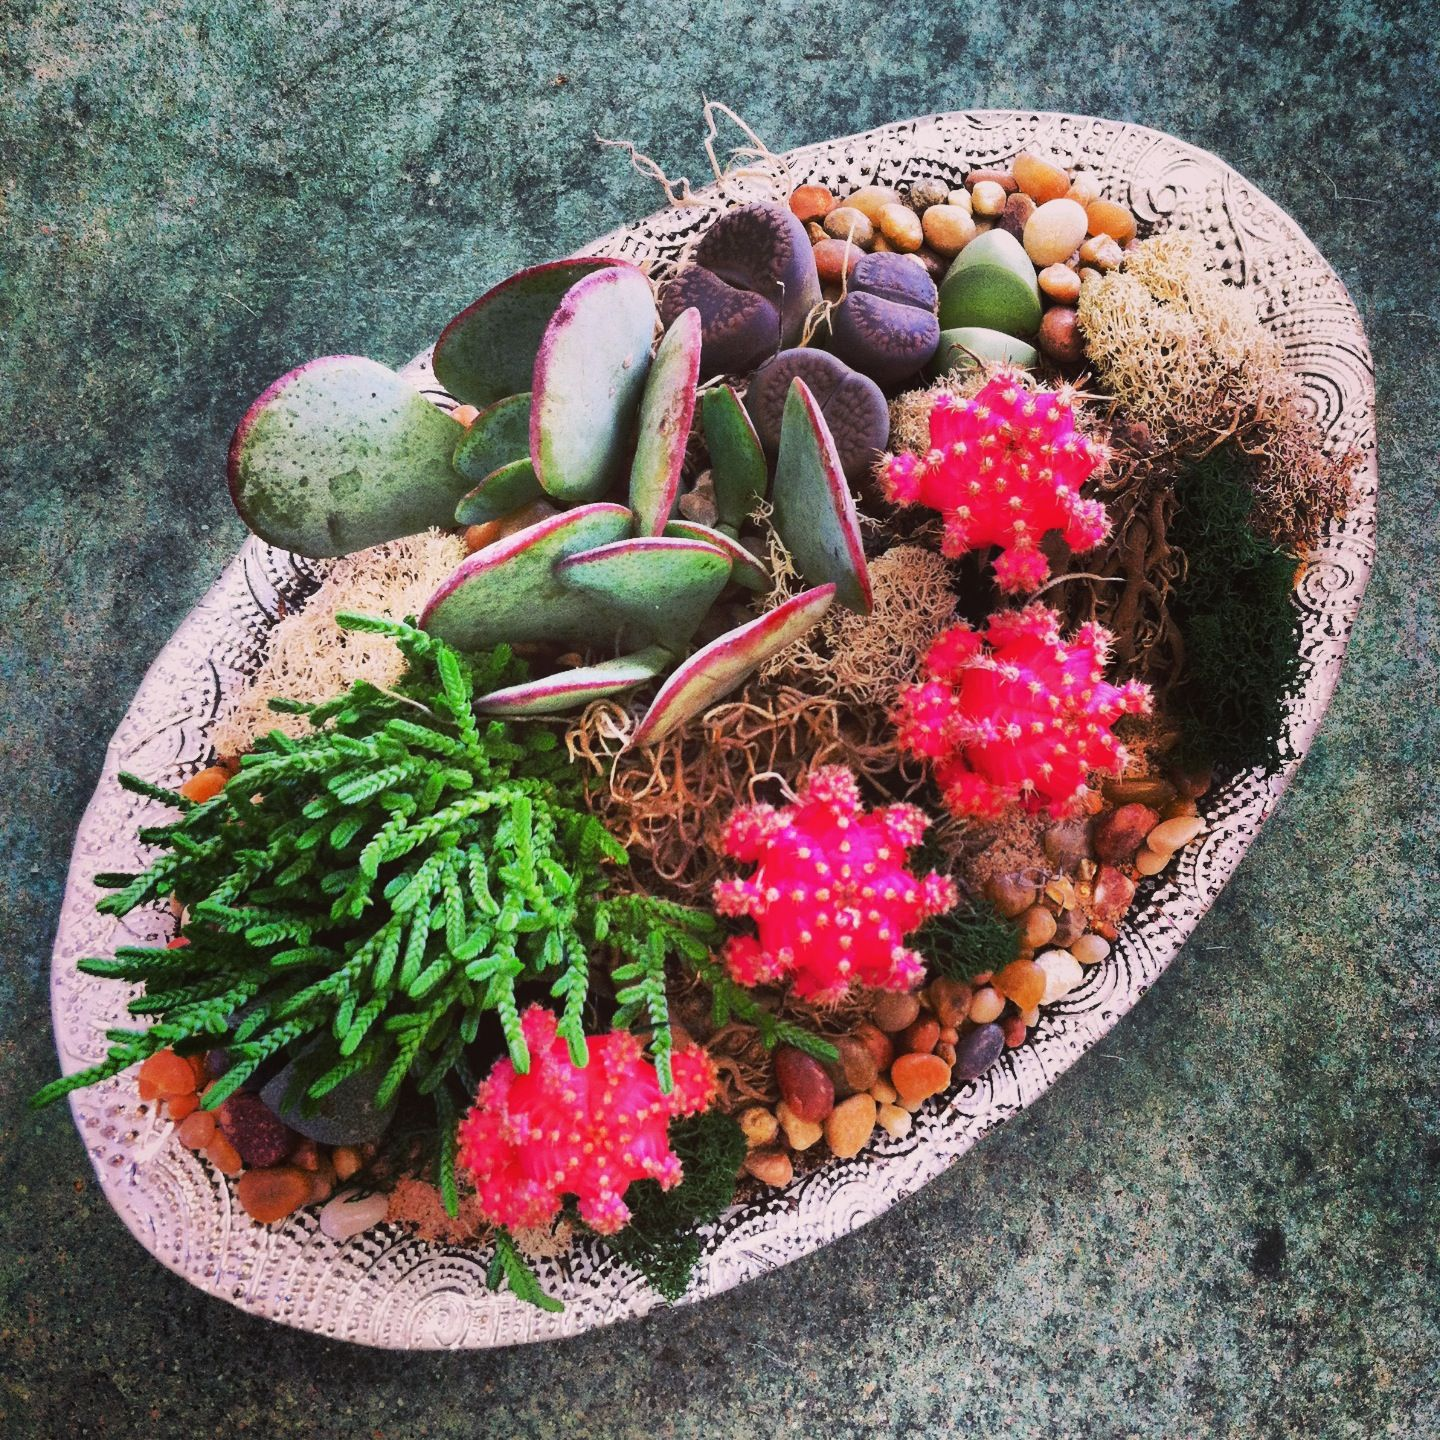 Moon cacti and succulents dish garden Cacti and